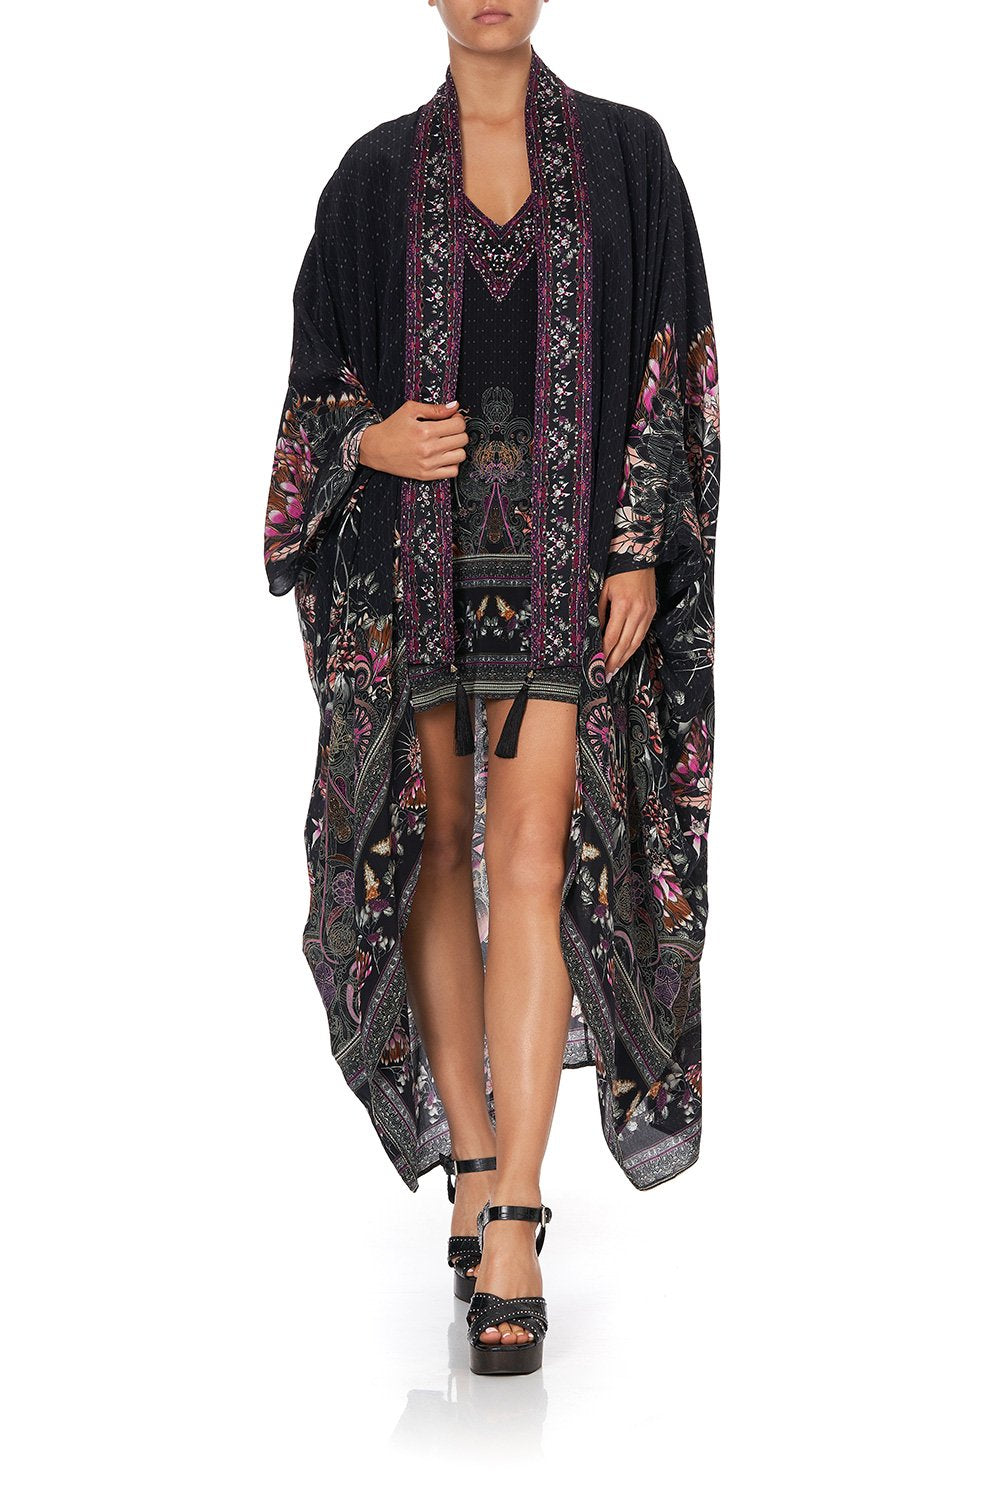 LAYER WITH KIMONO COLLAR RESTLESS NIGHTS